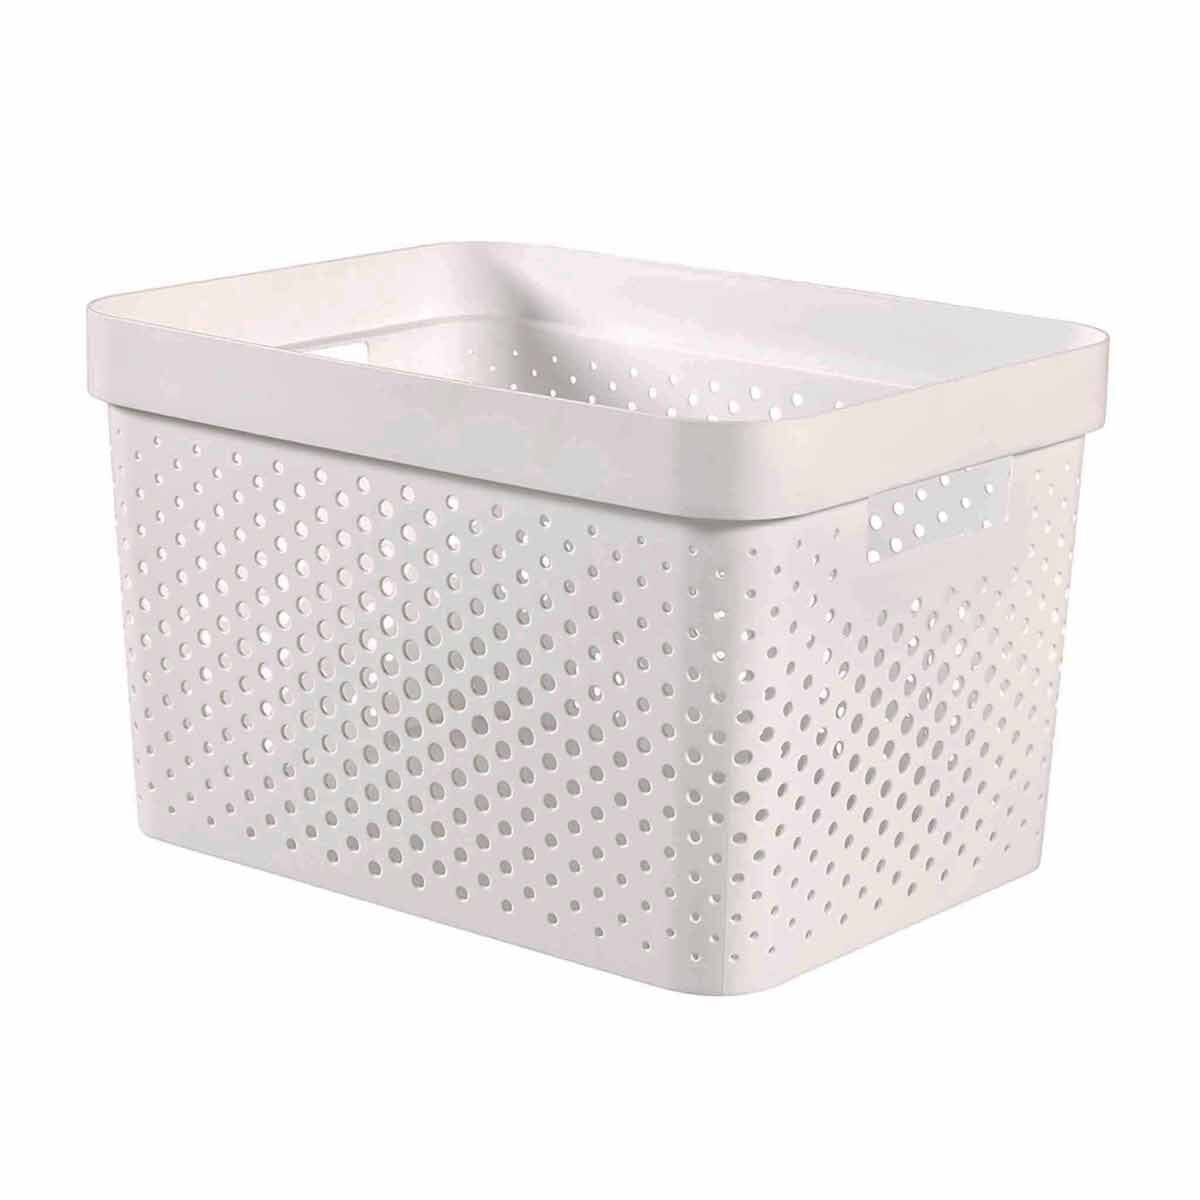 Curver Infinity Basket 17L White Pack of 5 White